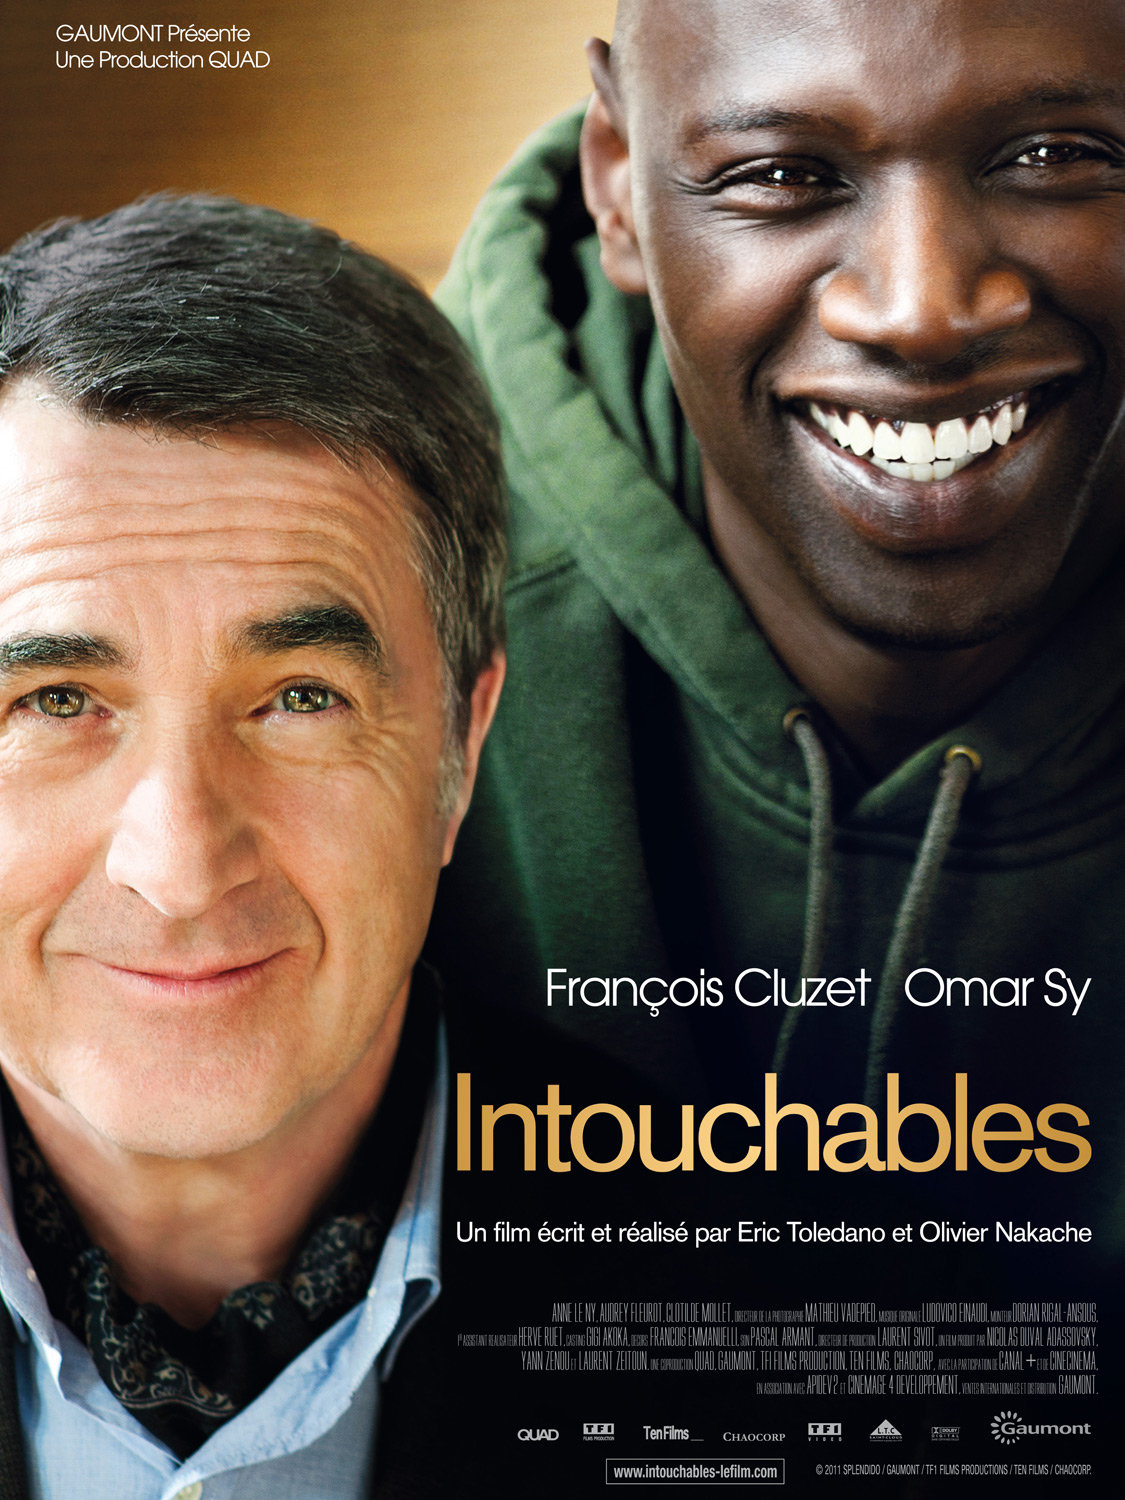 Intouchables.2011.720p.BDRip.x264.AC3-Zoo torrent